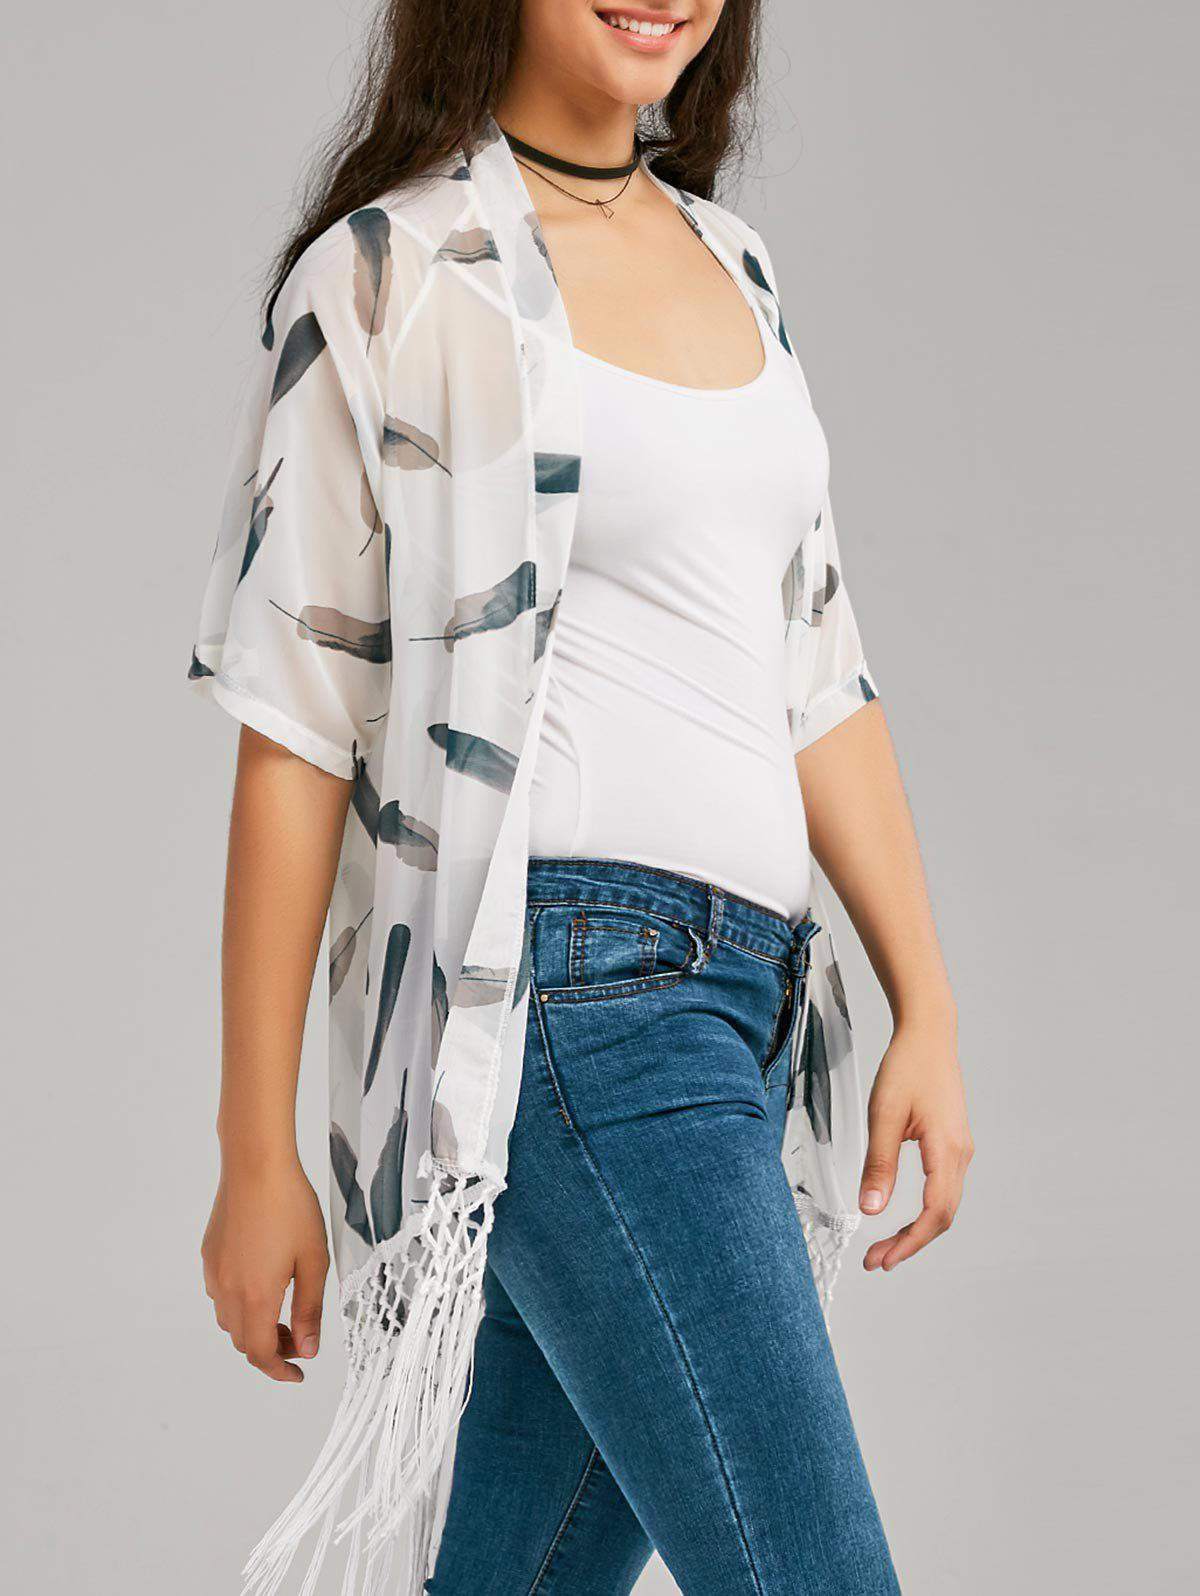 Fringe Print Long Sheer Chiffon Cape - WHITE